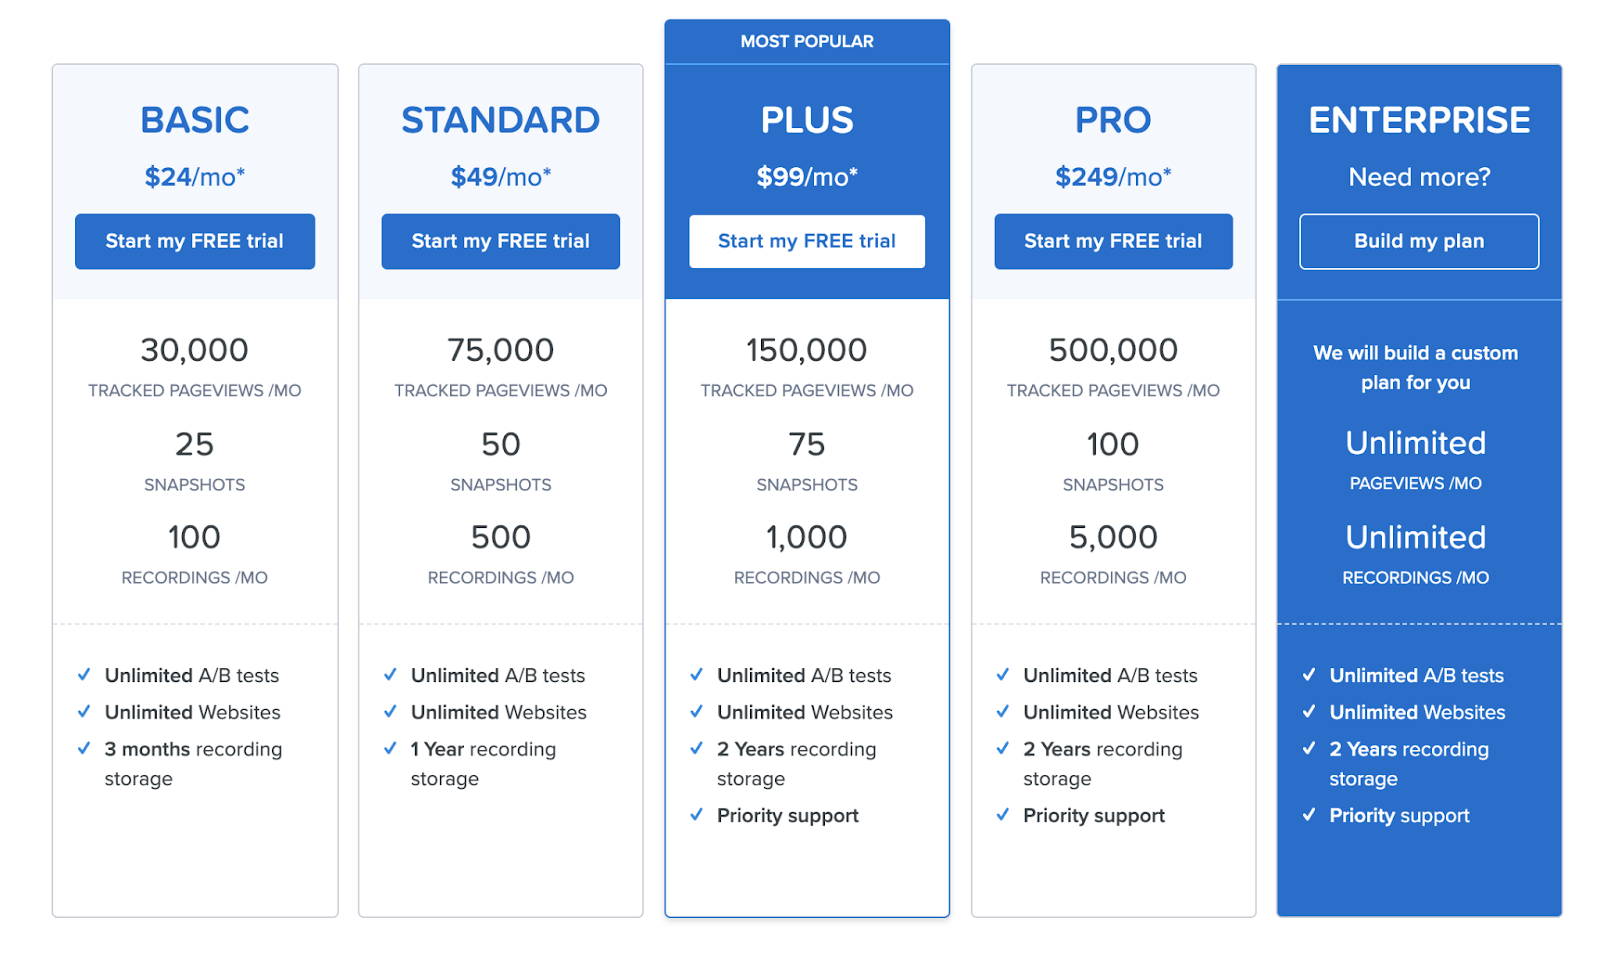 Value-based pricing by Crazyegg